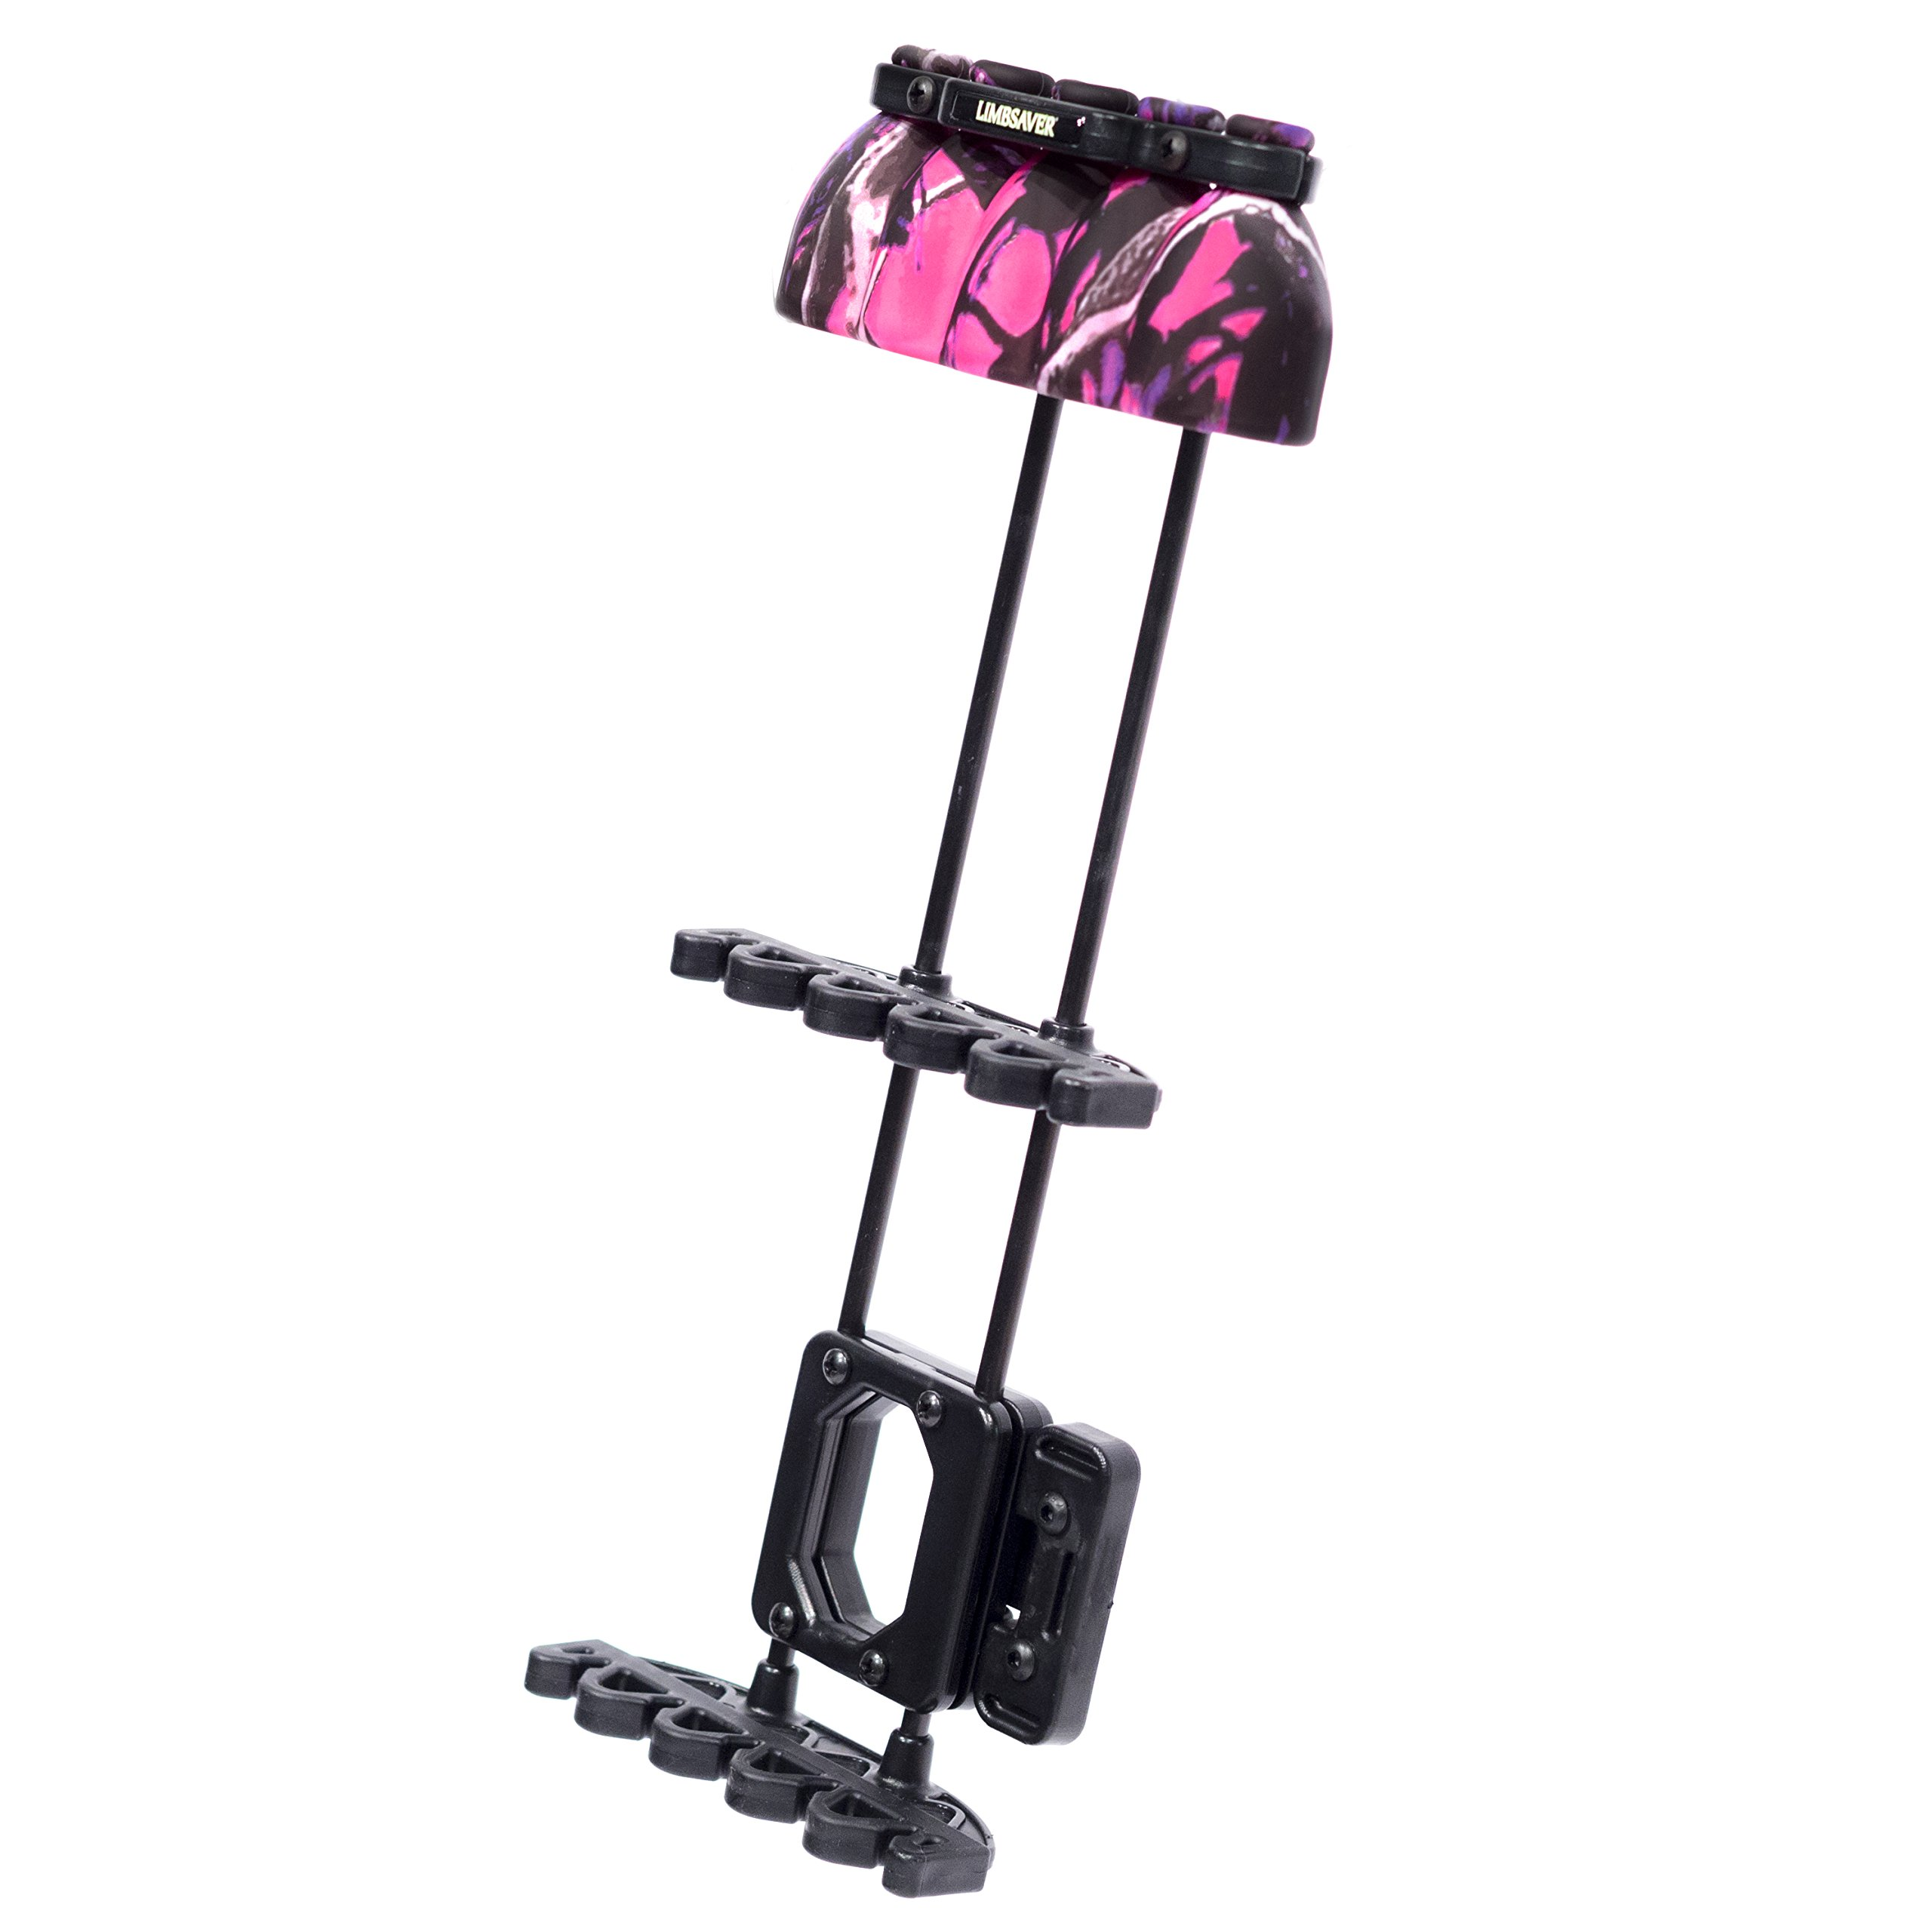 LimbSaver 1000810 Silent Quiver Onepiece Moon Shine Muddy Girl